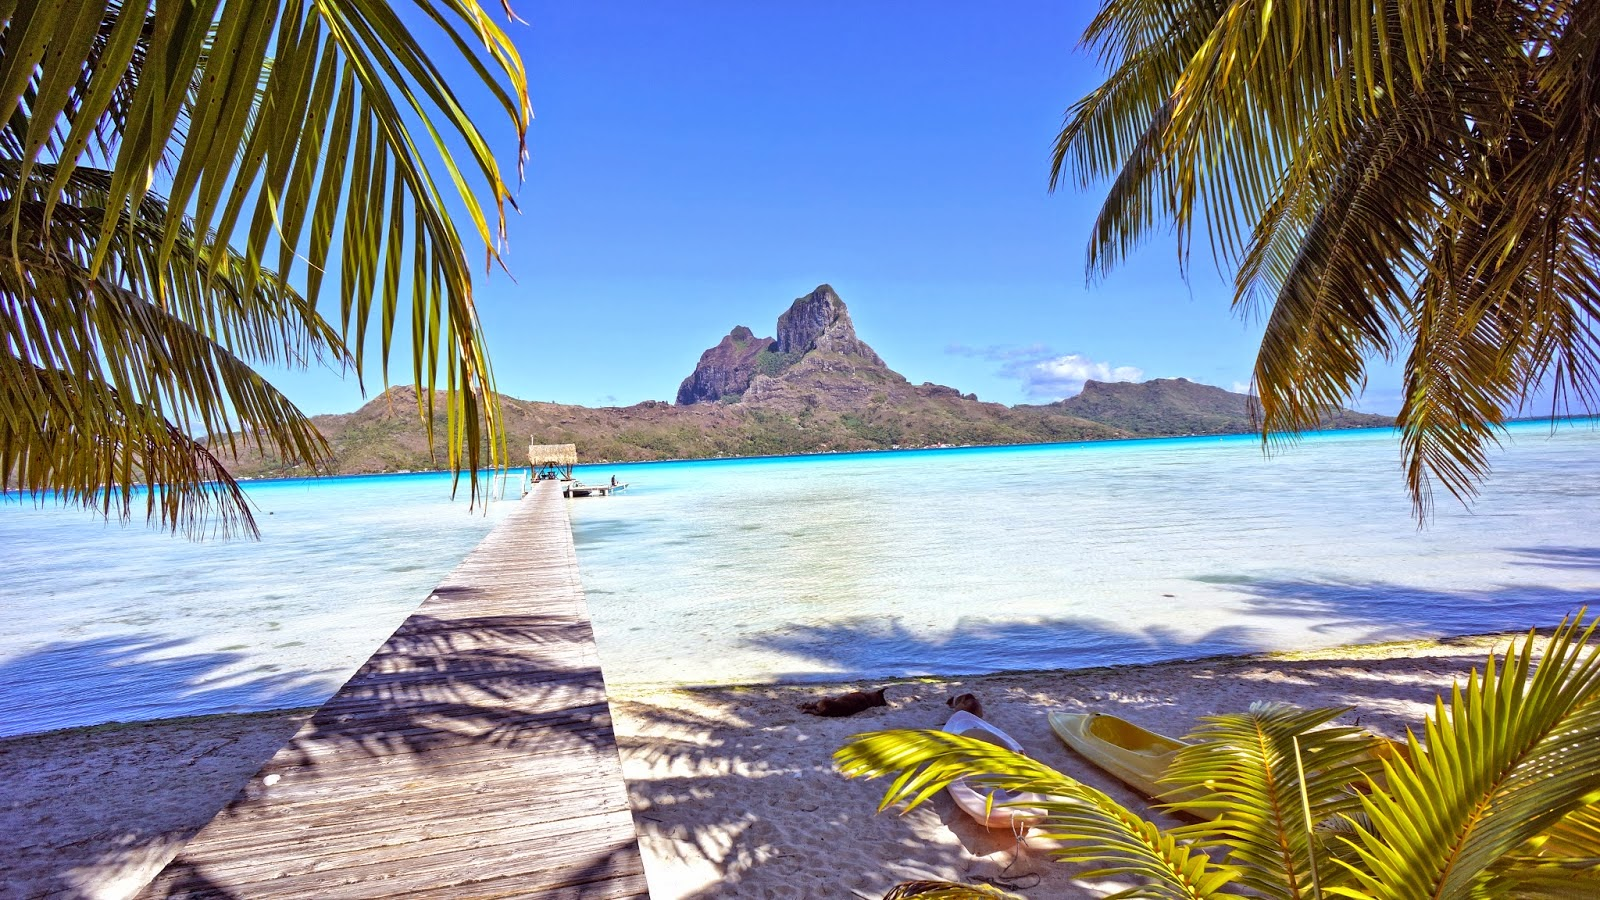 Motu beaches Moorea, Travel tips: The world's best beaches, places, resorts ...